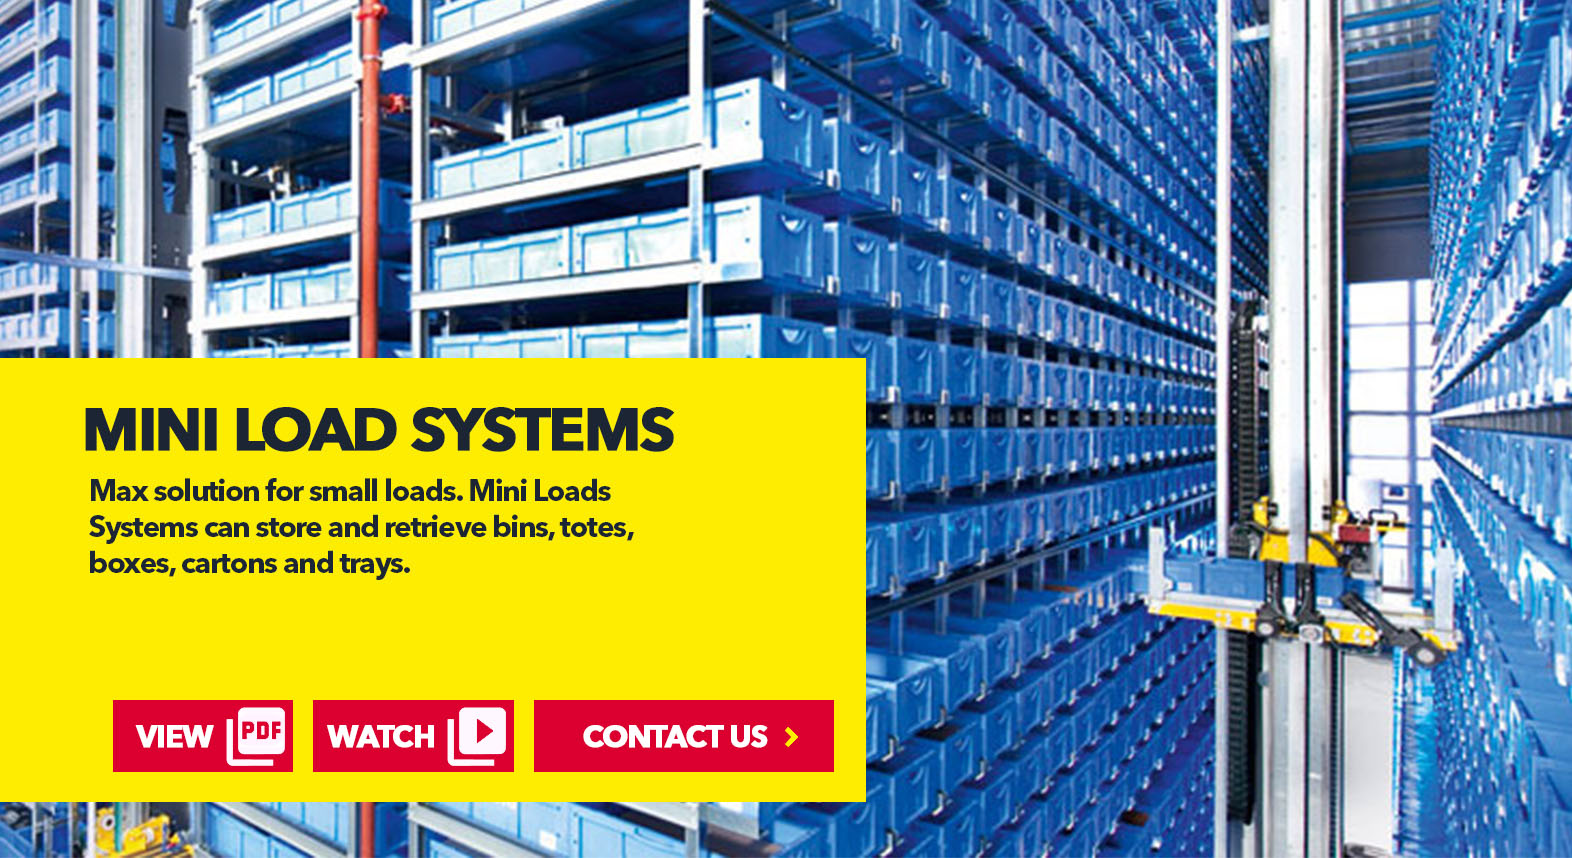 Mini-Load Systems by SSI Schaefer USA. Shop Now. Contact Us. www.chaefershelving.com